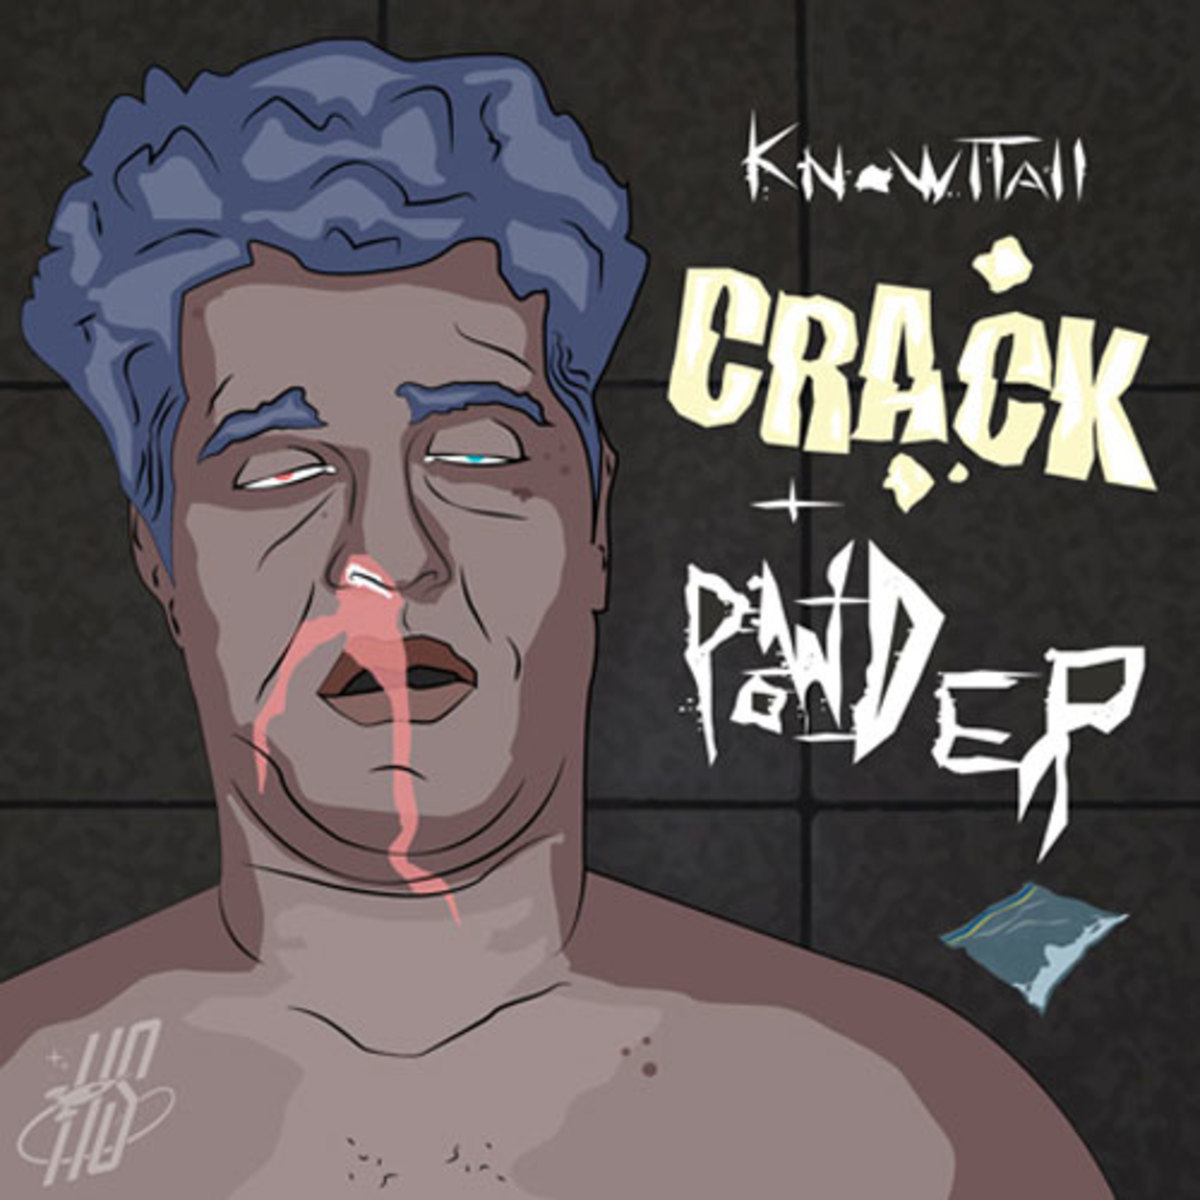 knowitall-crack.jpg